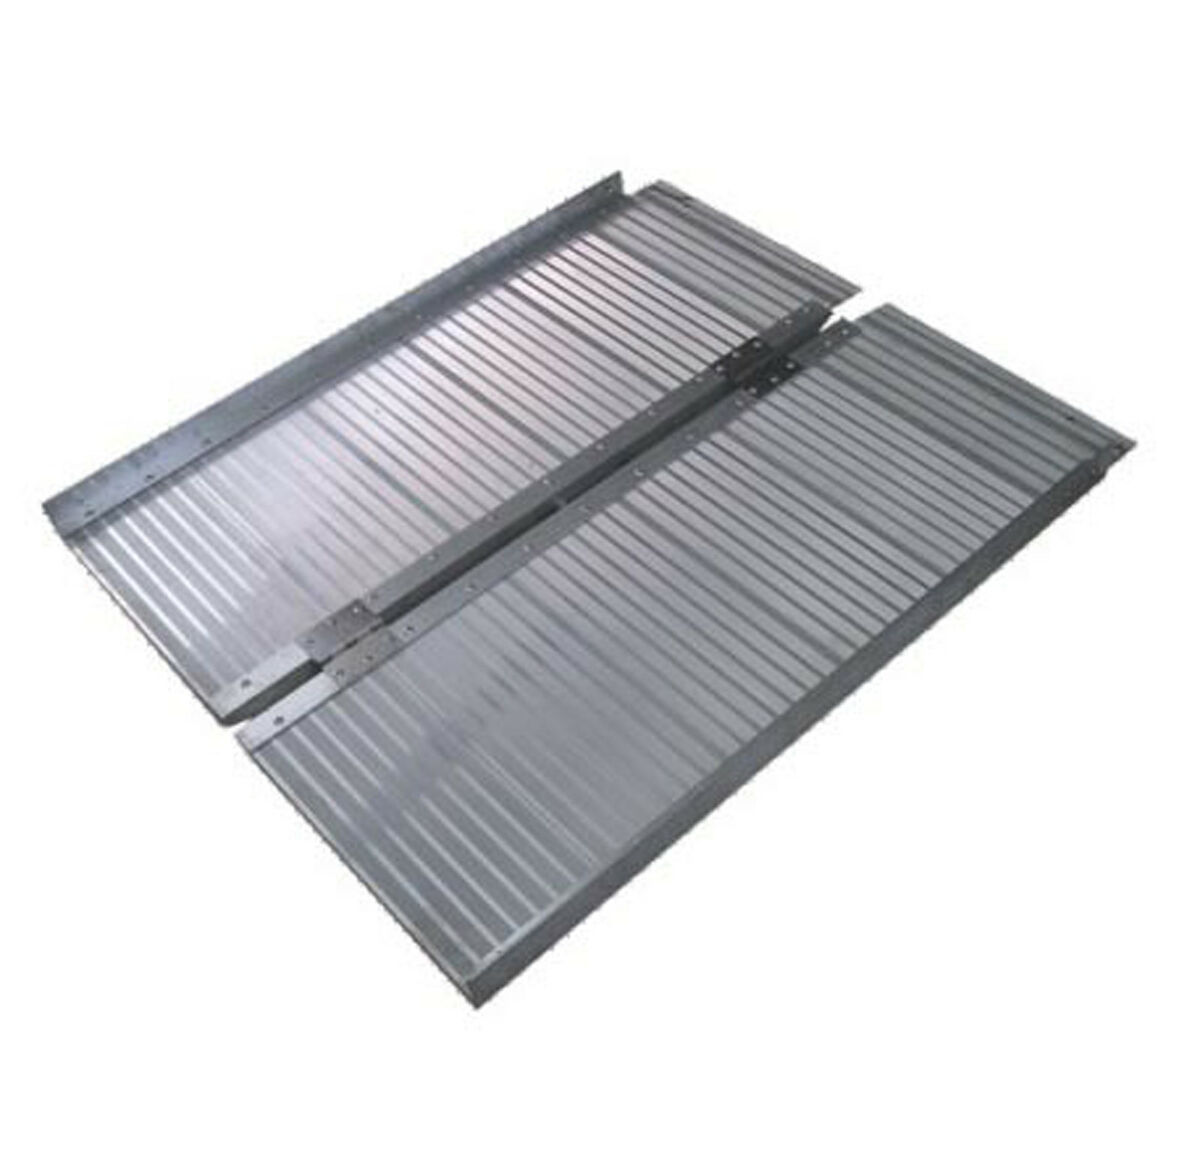 Foot aluminum folding wheelchair ramp mobility scooter for Aluminum wheel chair ramps